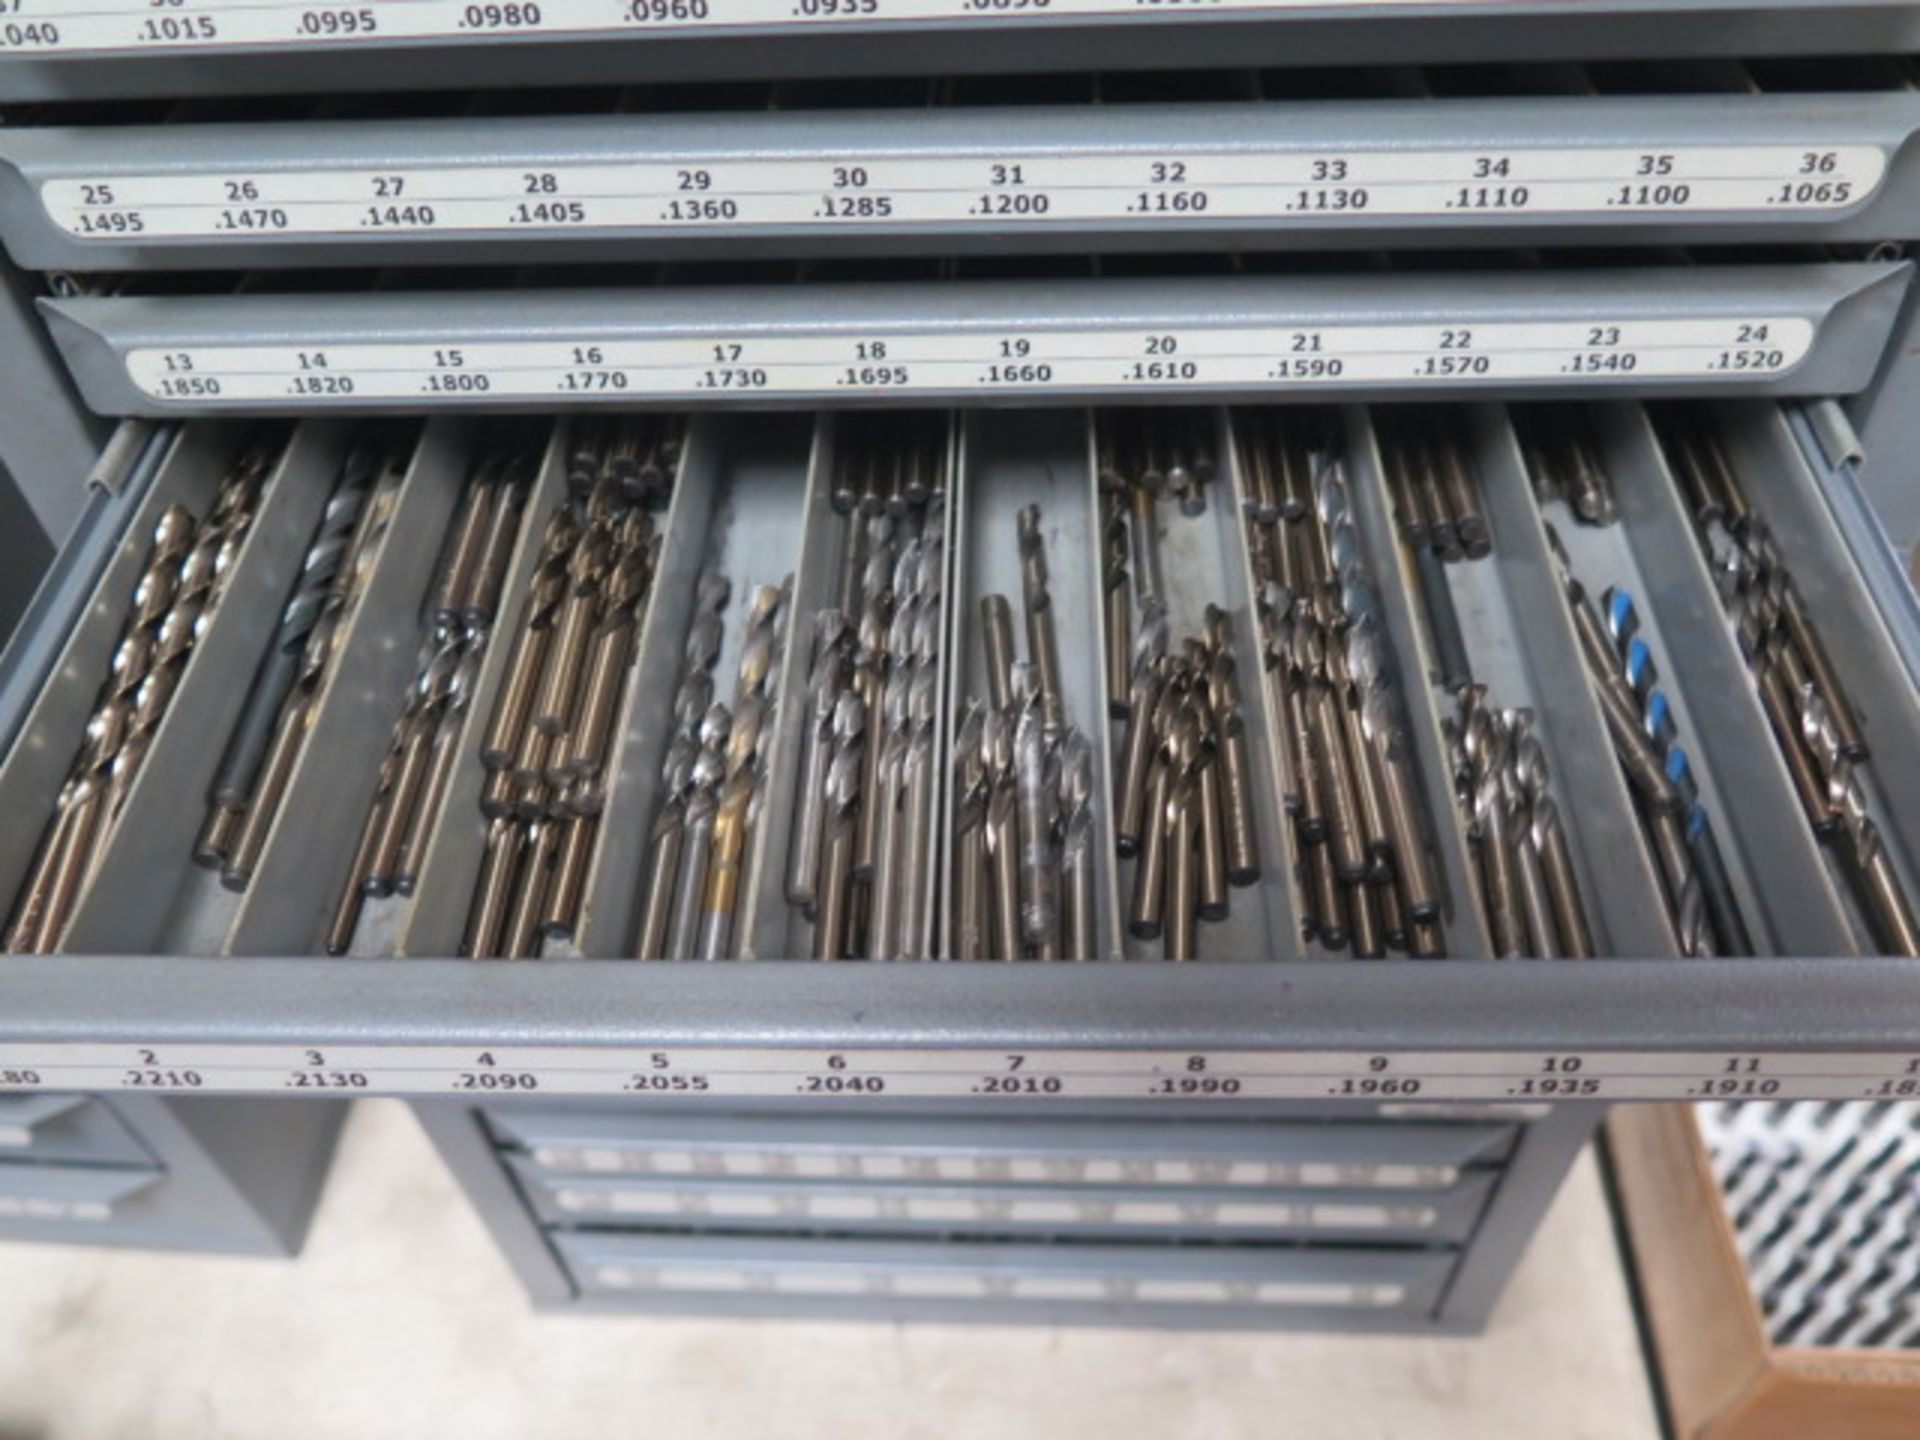 Huot Drill Cabinets (3) w/ Drills (SOLD AS-IS - NO WARRANTY) - Image 11 of 15